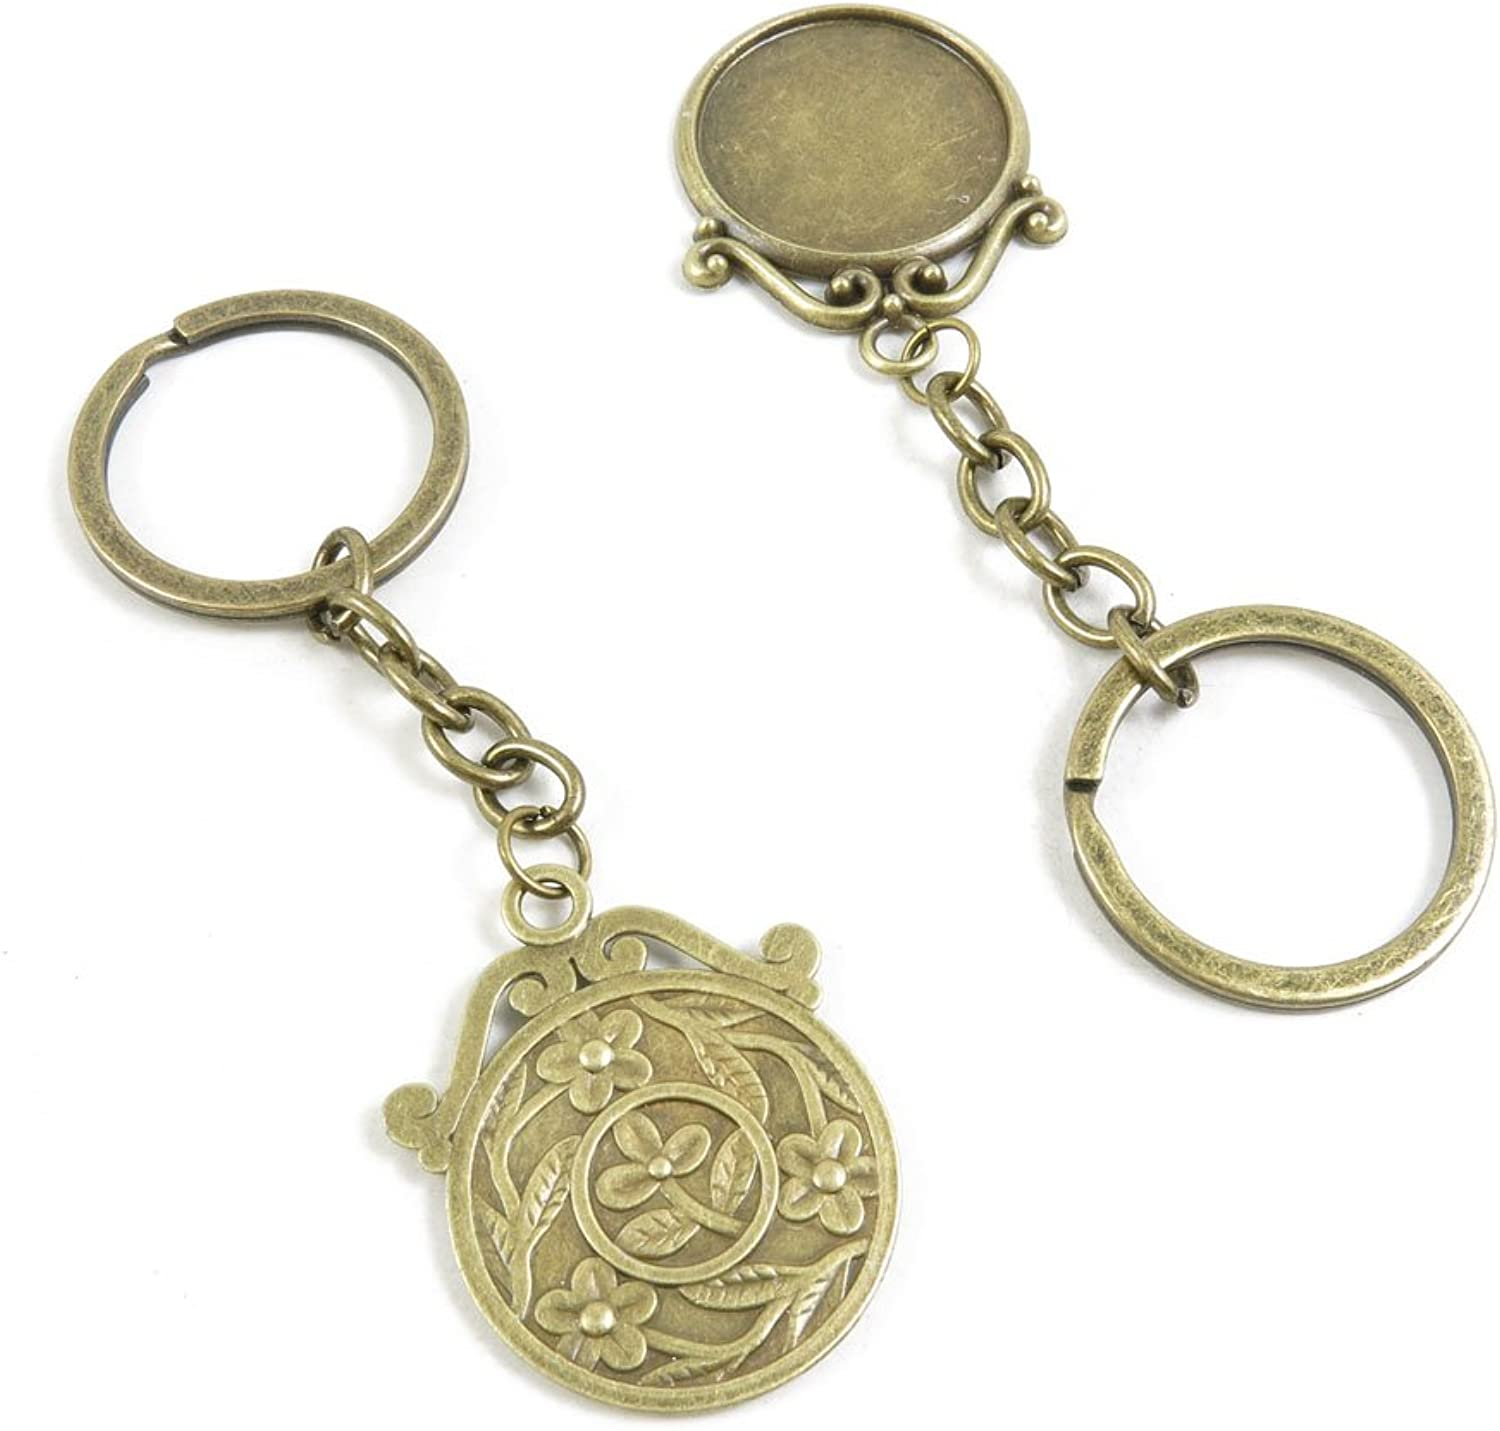 160 Pieces Fashion Jewelry Keyring Keychain Door Car Key Tag Ring Chain Supplier Supply Wholesale Bulk Lots I3AB1 Round Cabochon Base Blank 25mm